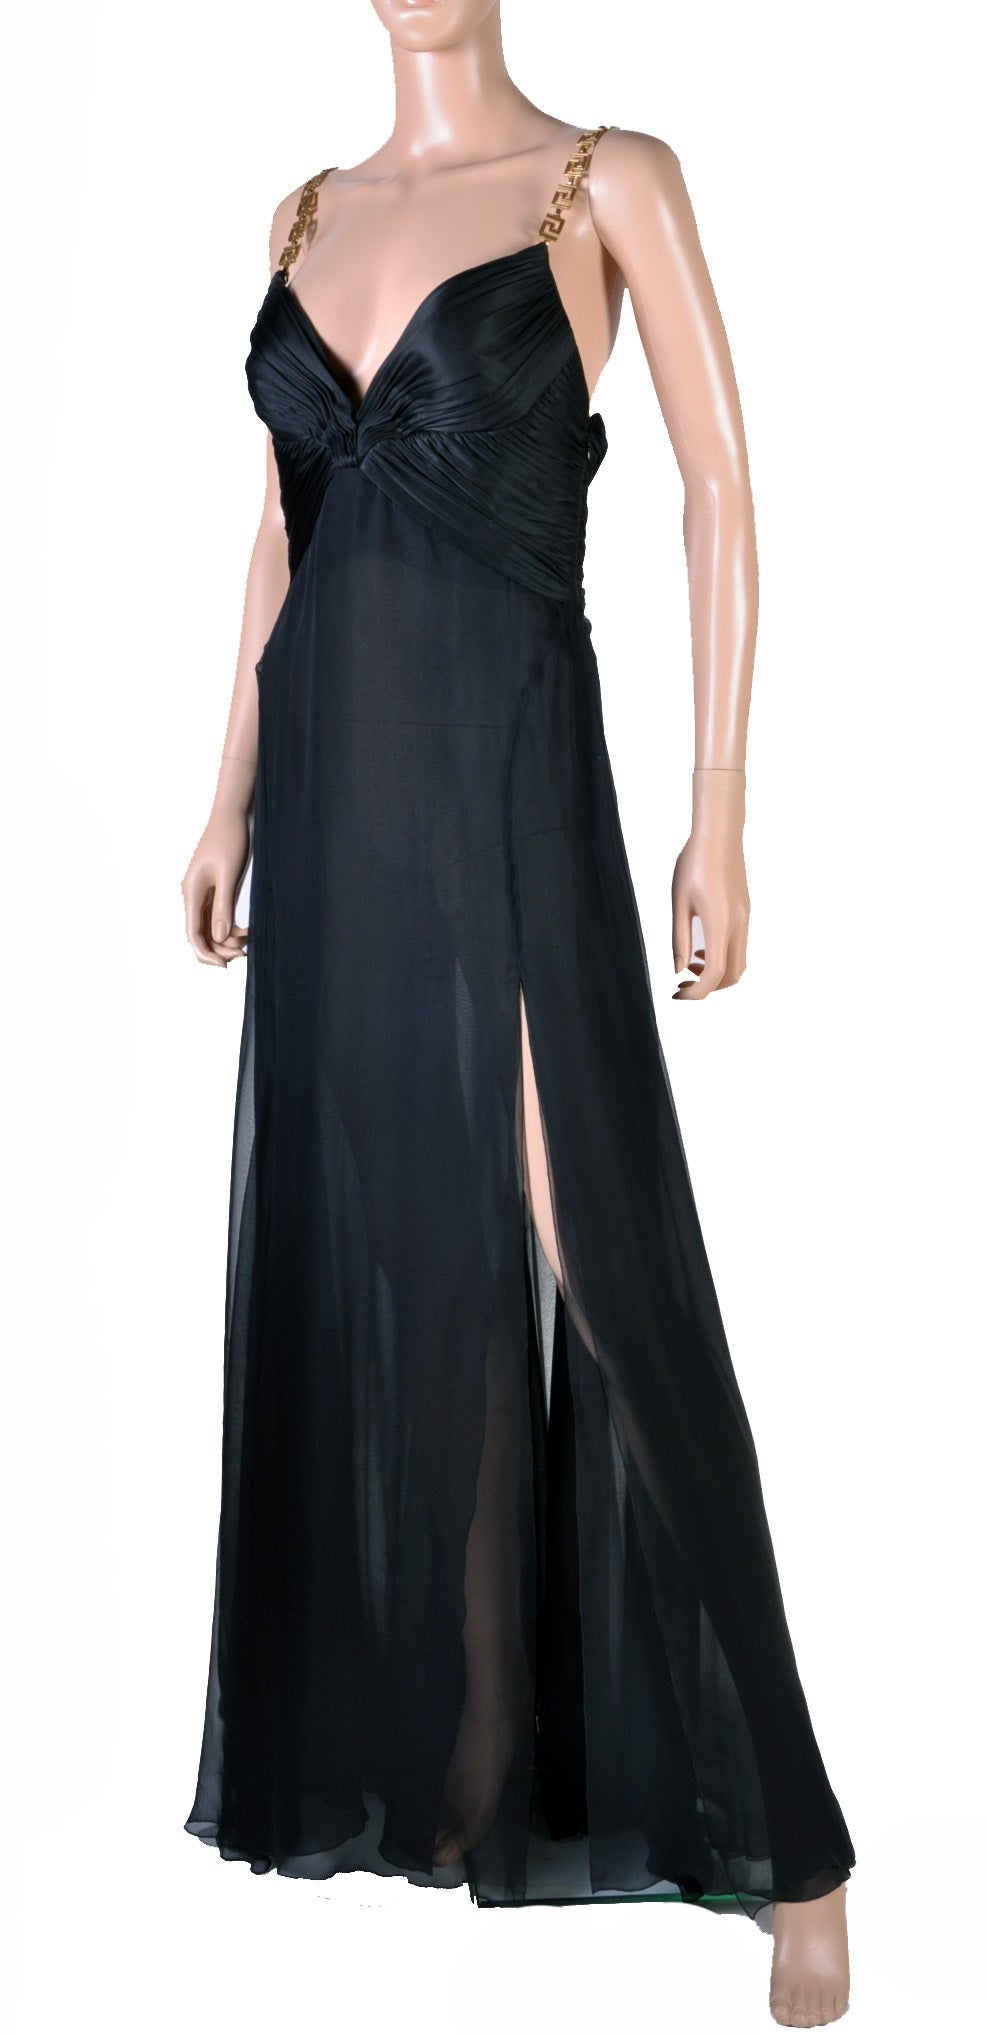 Versace Black Silk Chiffon Gown with Greek Key Straps In New never worn Condition For Sale In Montgomery, TX